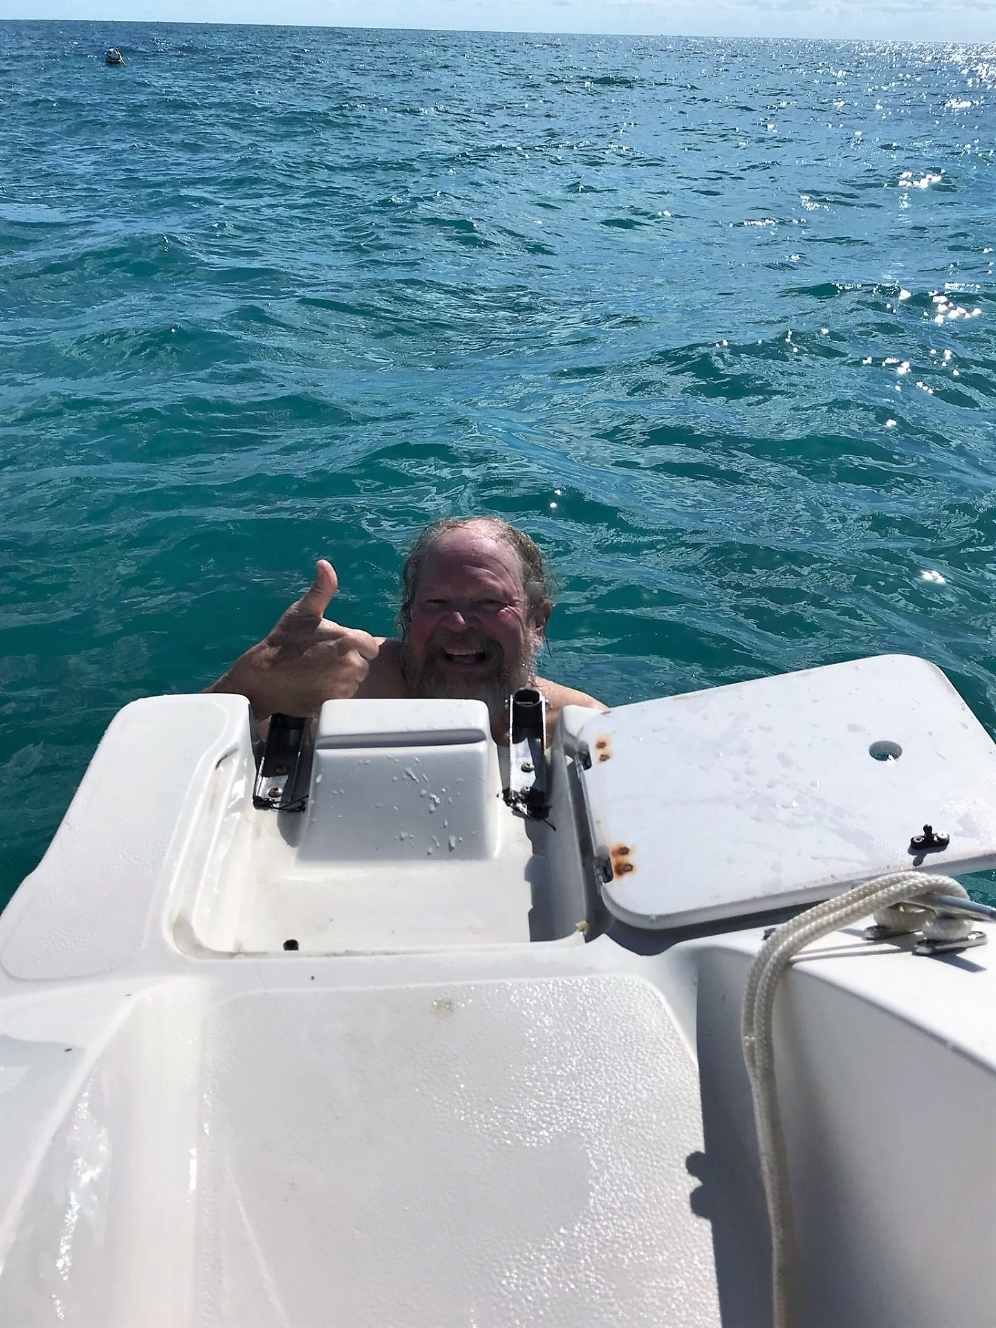 George L. Heinrich giving the thumbs up after finding a hawksbill sea turtle ( Eretmochelys imbricata ) in the Florida Keys. Photograph by Bob Krause.